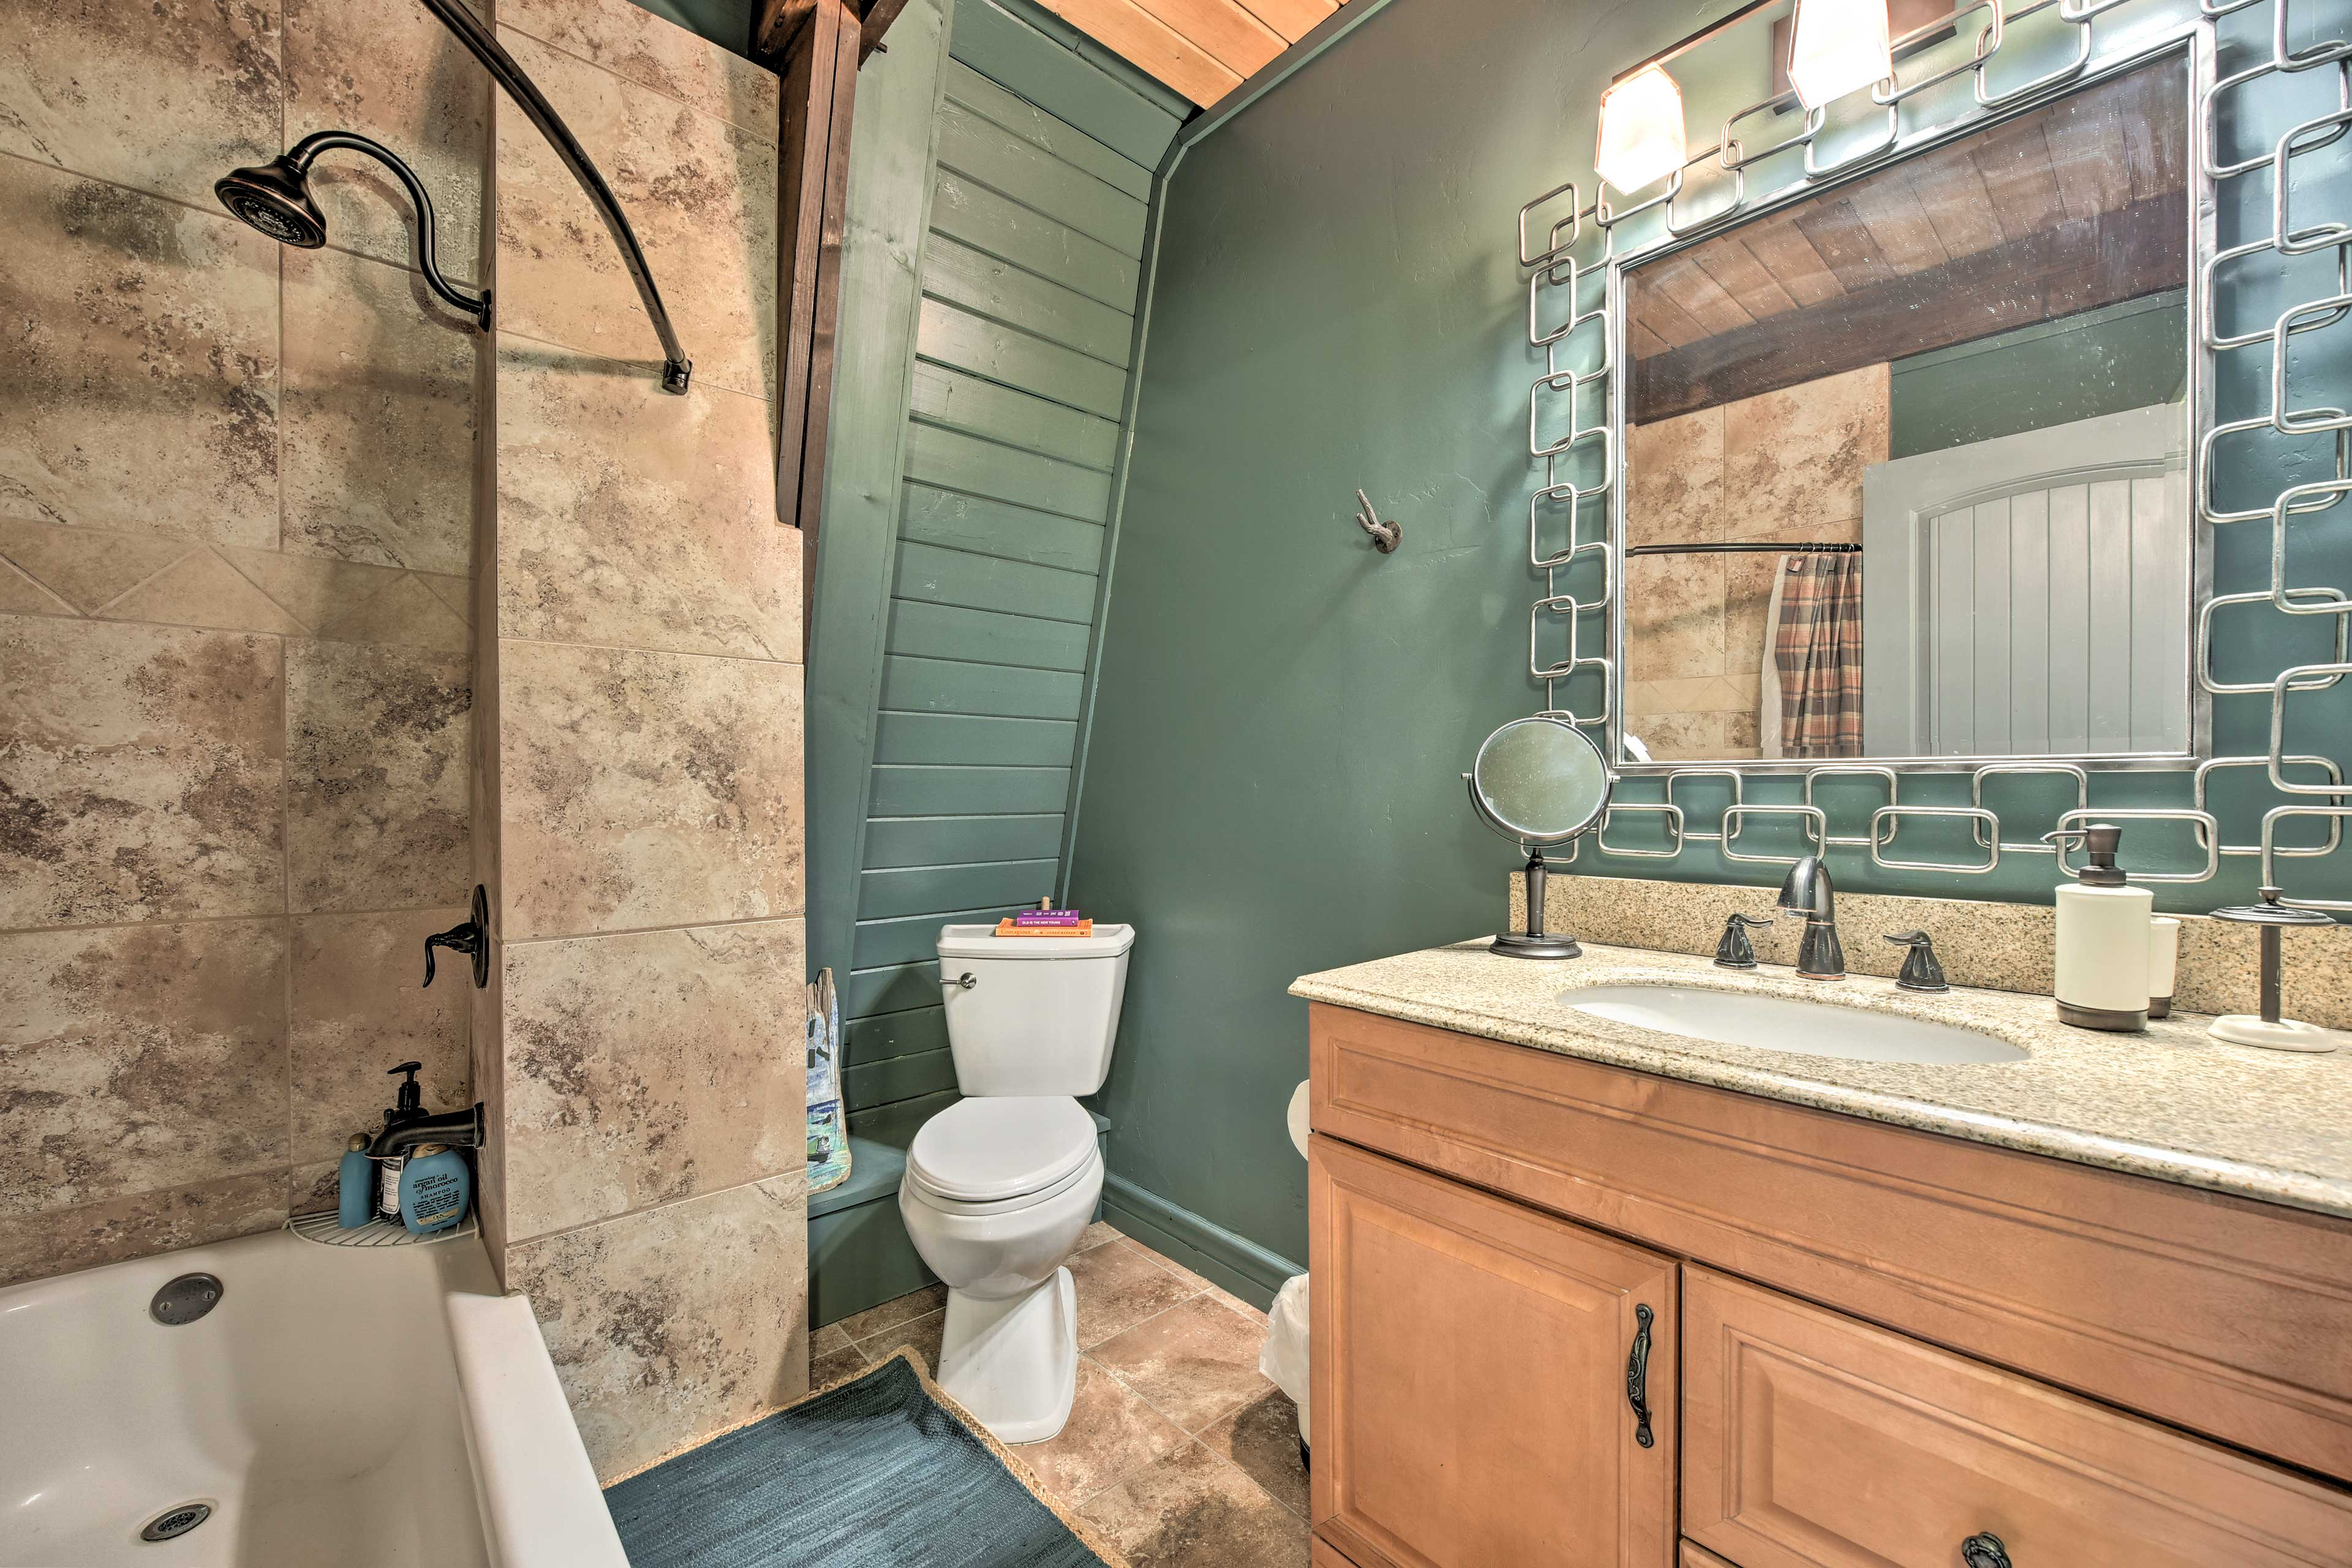 The cabin contains 2 full bathrooms.